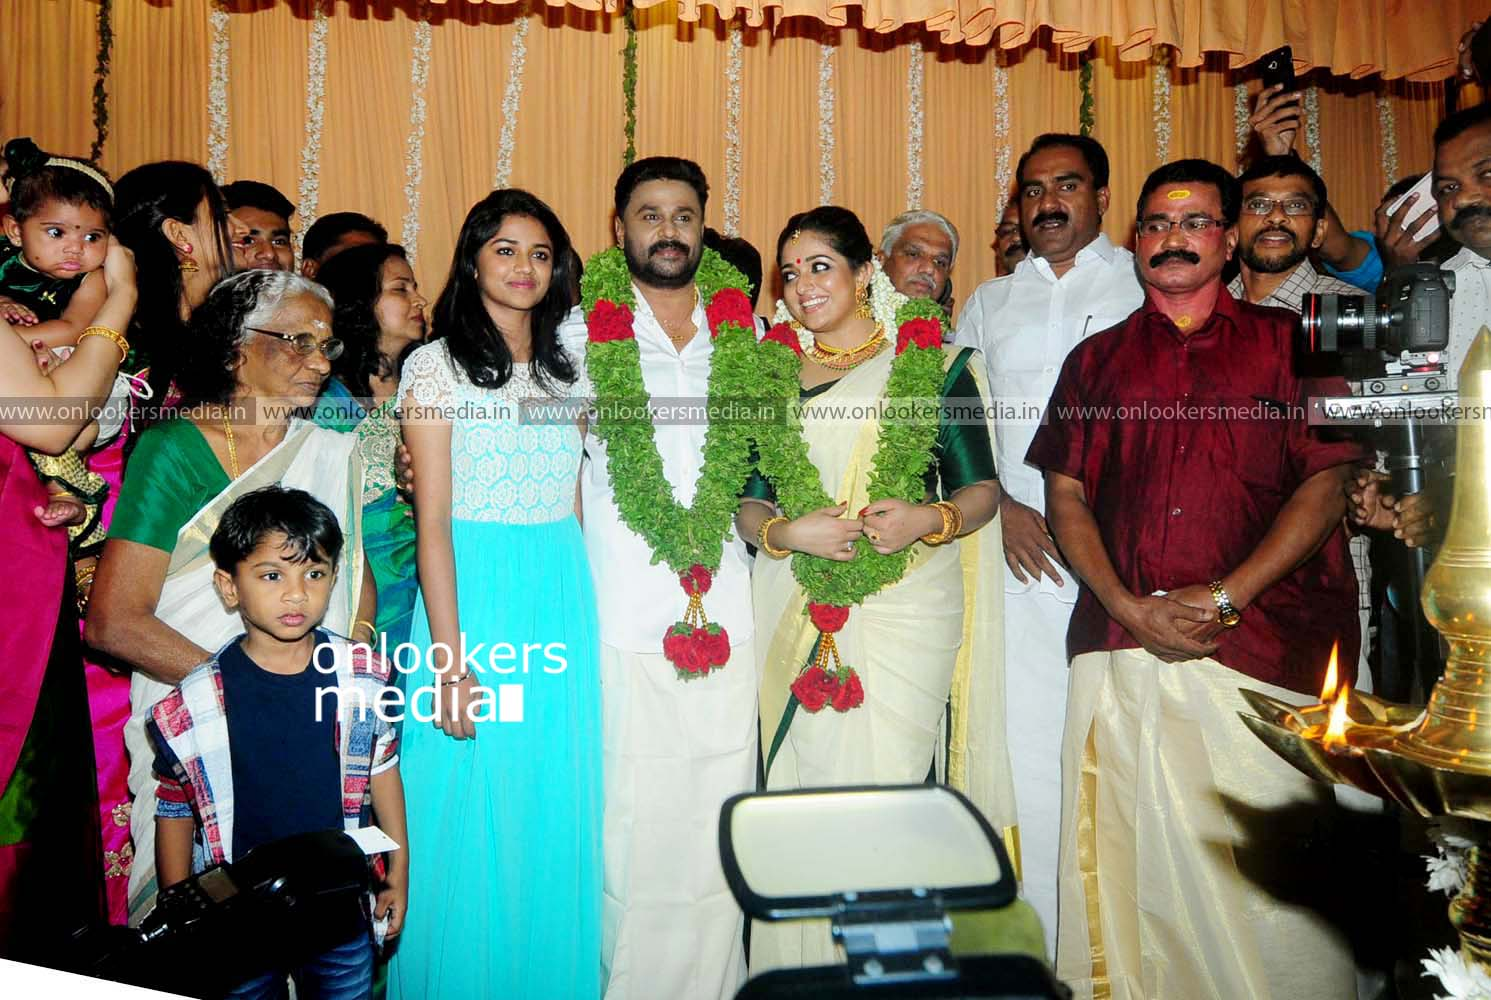 http://onlookersmedia.in/wp-content/uploads/2016/11/Dileep-Kavya-Madhavan-Wedding-Stills-Photos-30.jpg